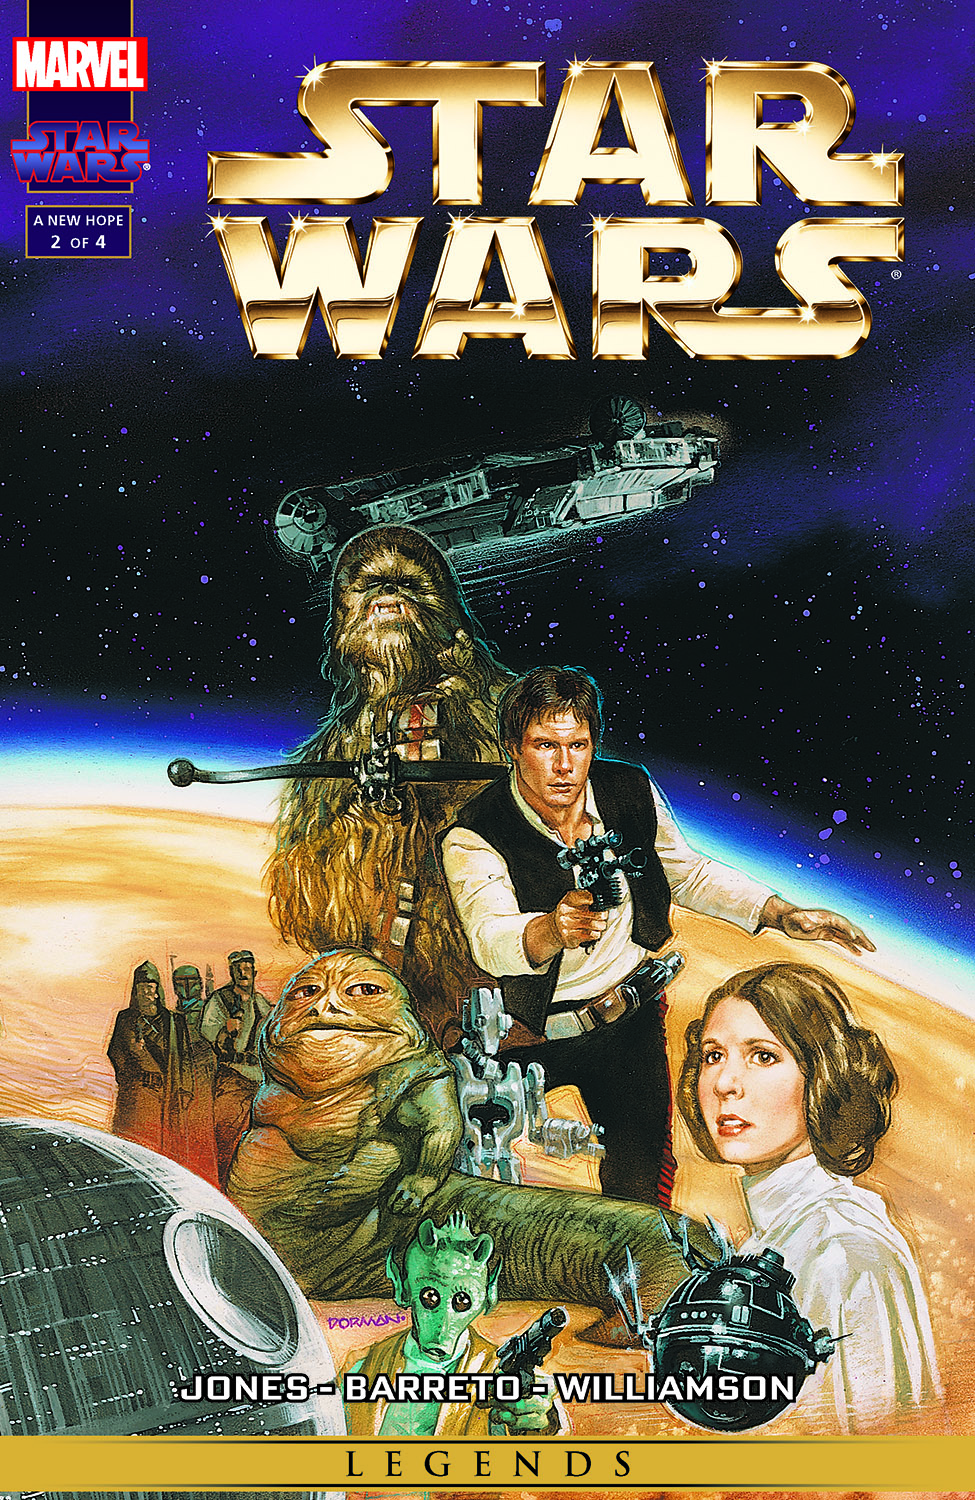 Star Wars: A New Hope - Special Edition (1997) #2